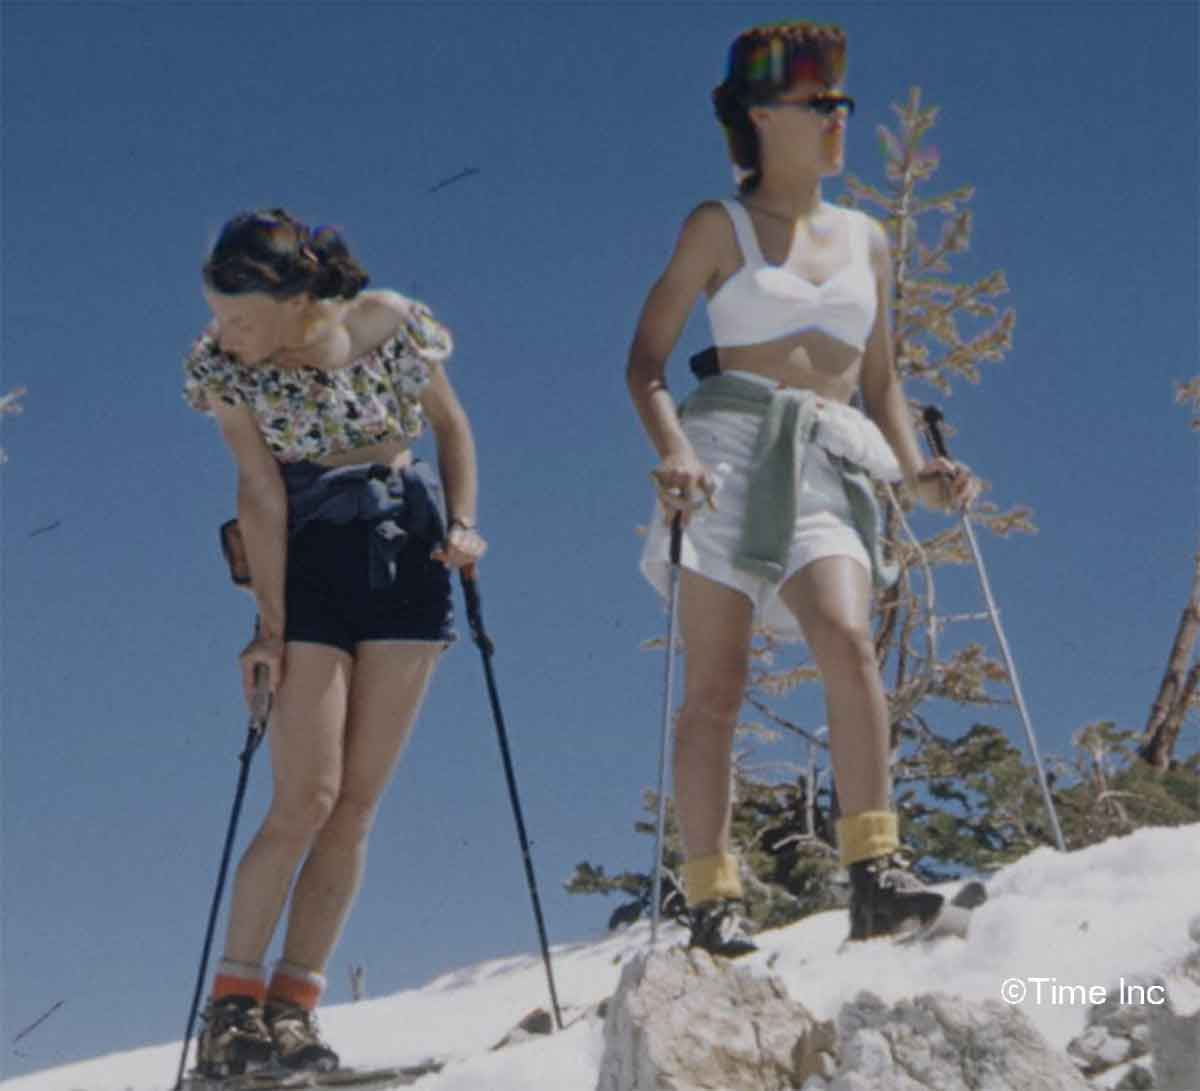 1940s-Fashion-Summer-Skiing-in-1942-10.jpg